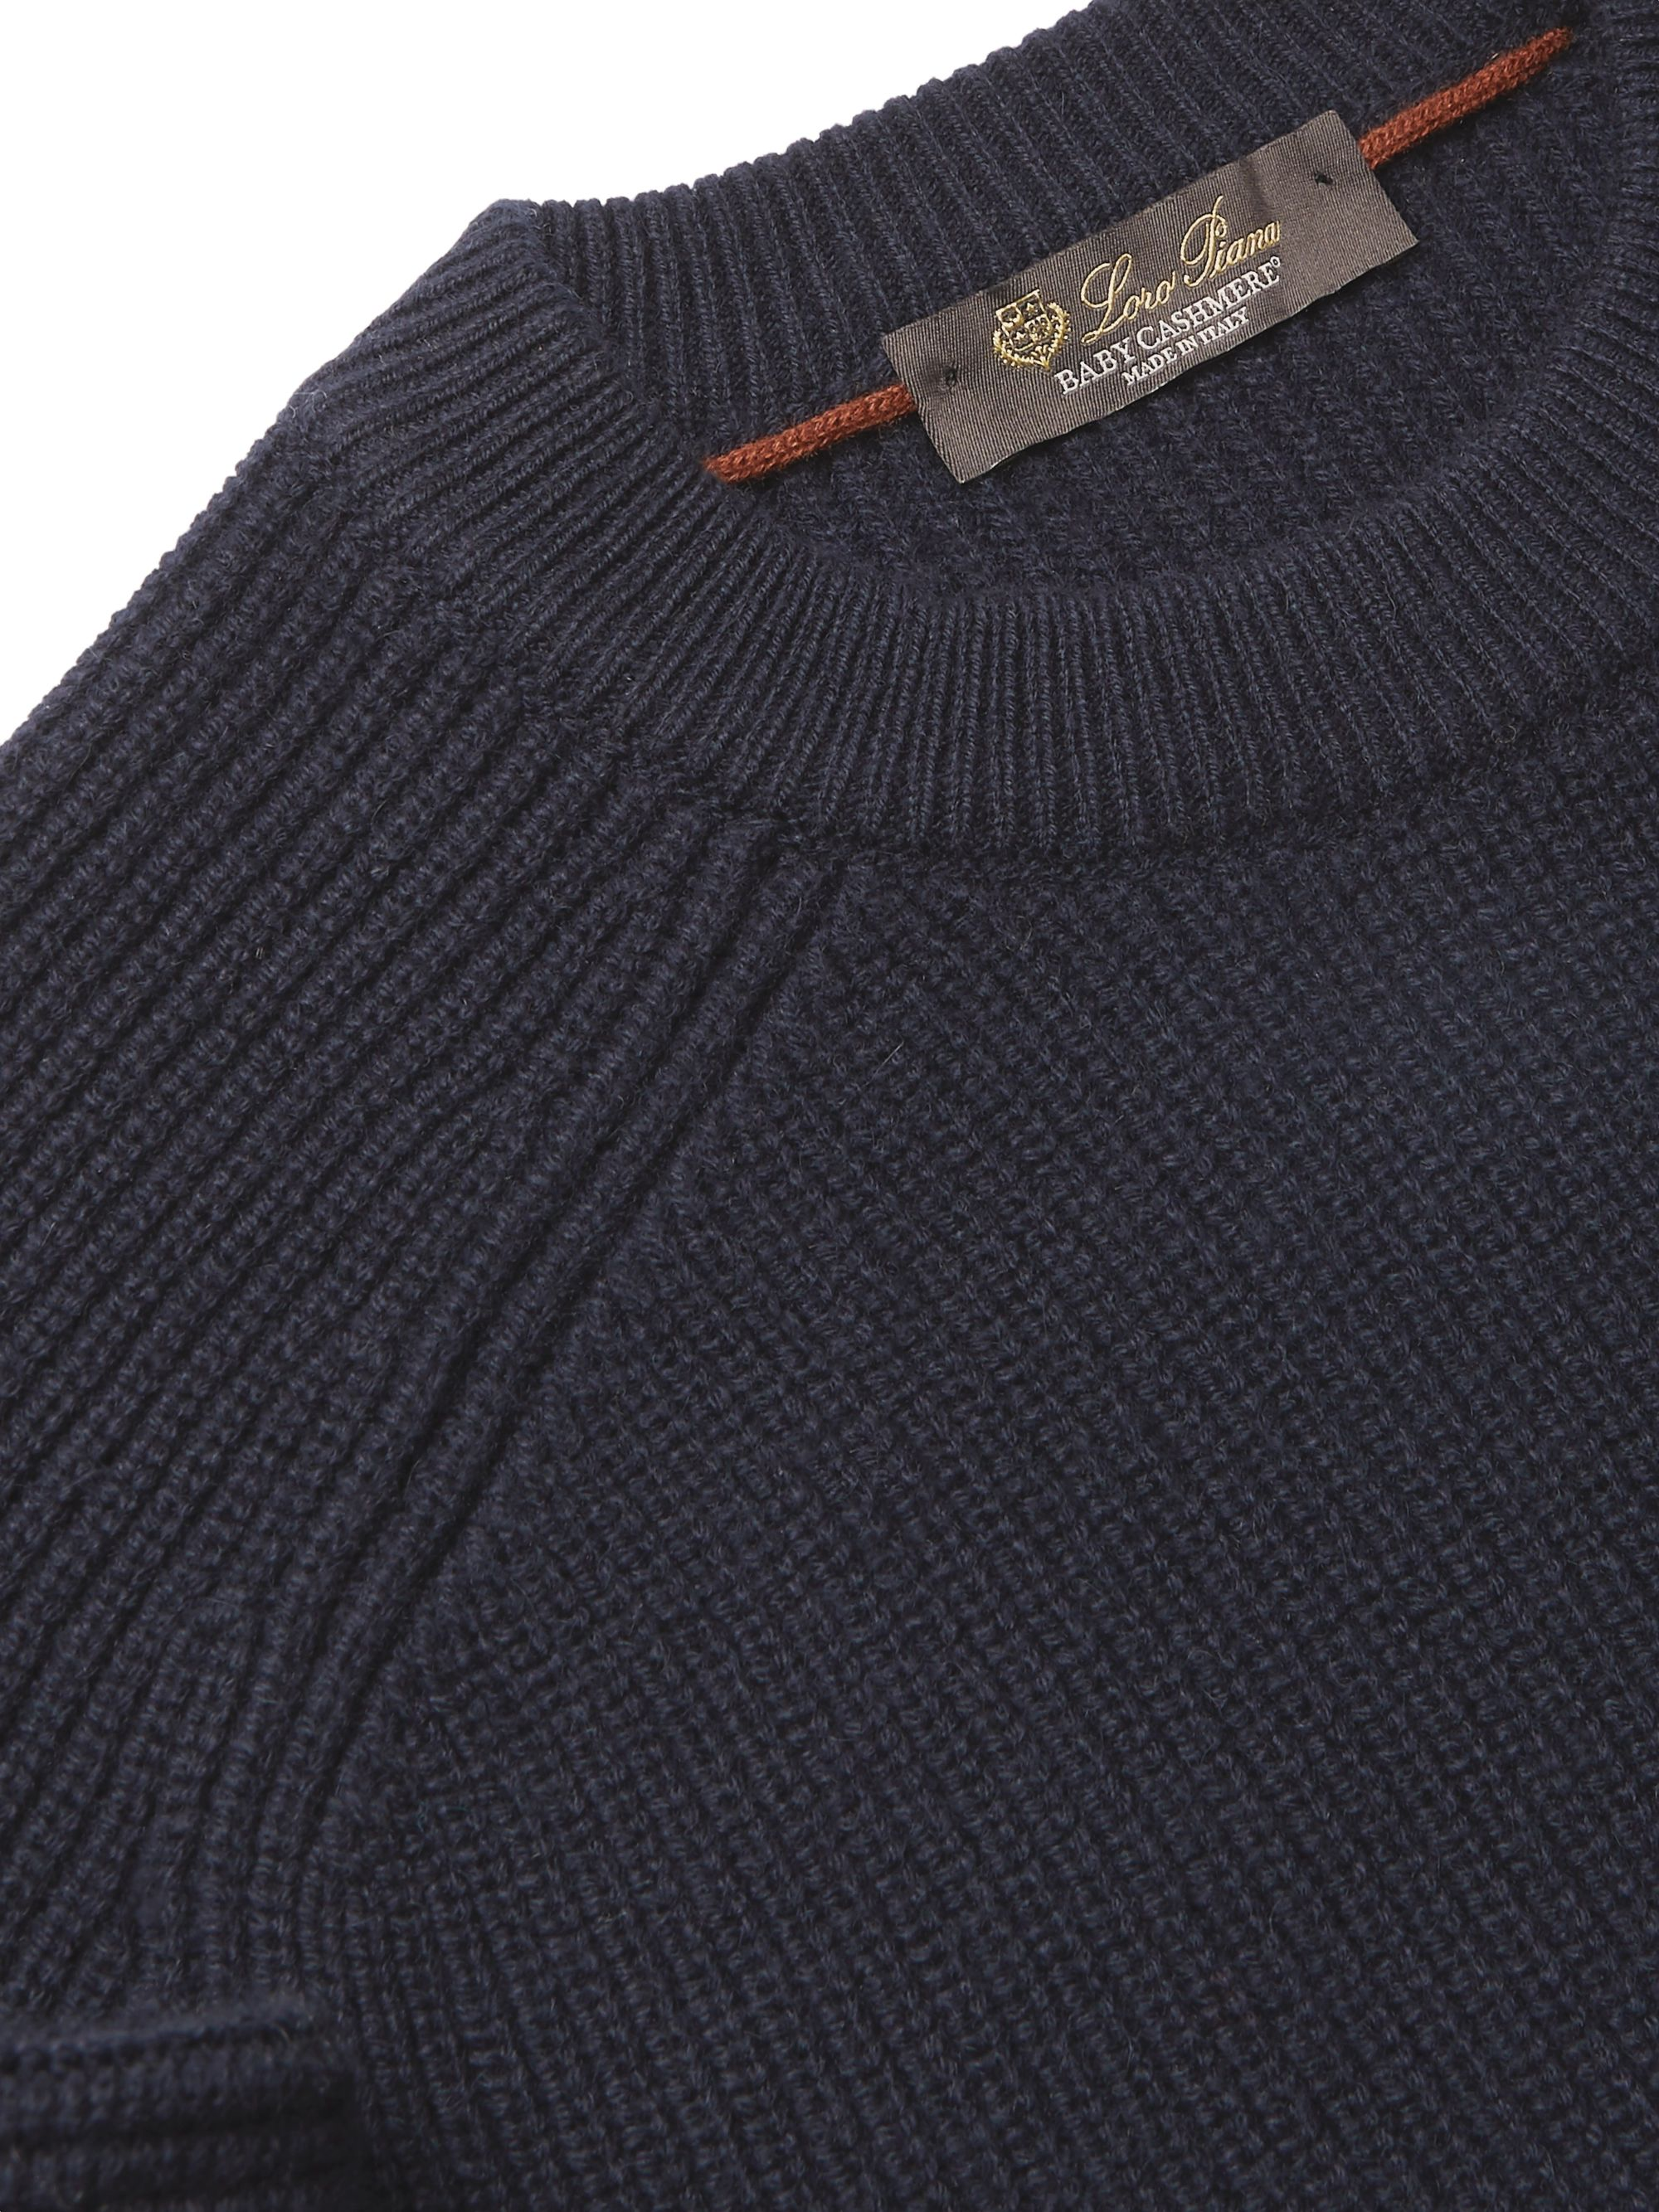 Loro Piana Lexington Striped Ribbed Baby Cashmere Sweater